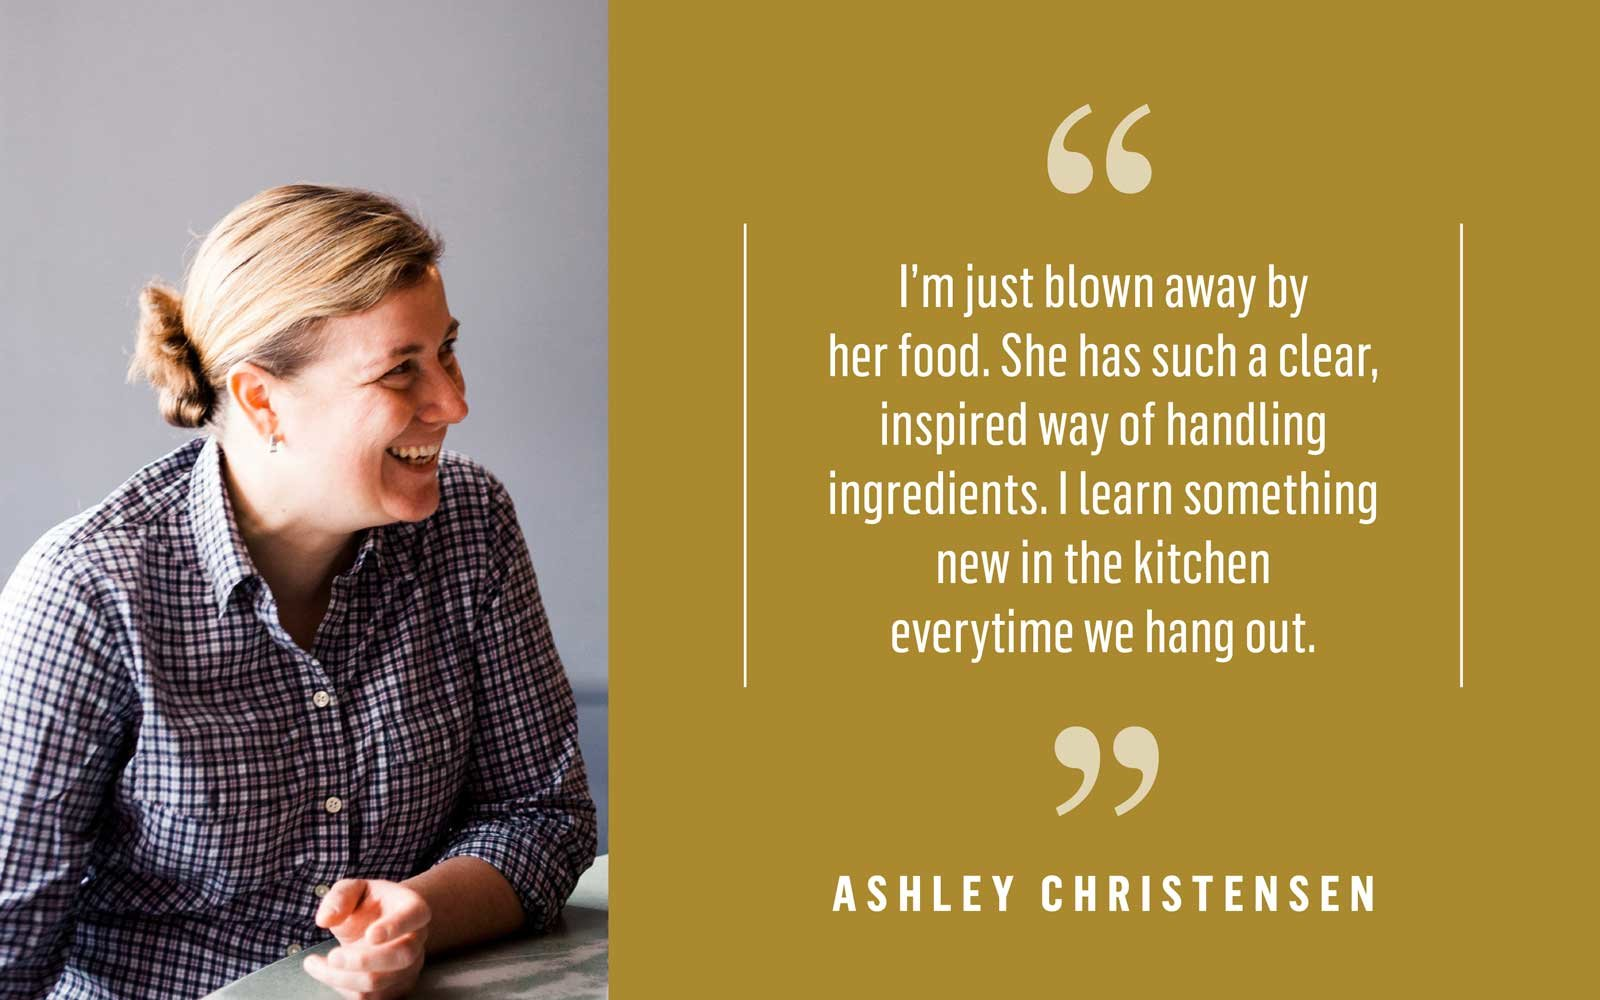 Chef Ashley Christensen